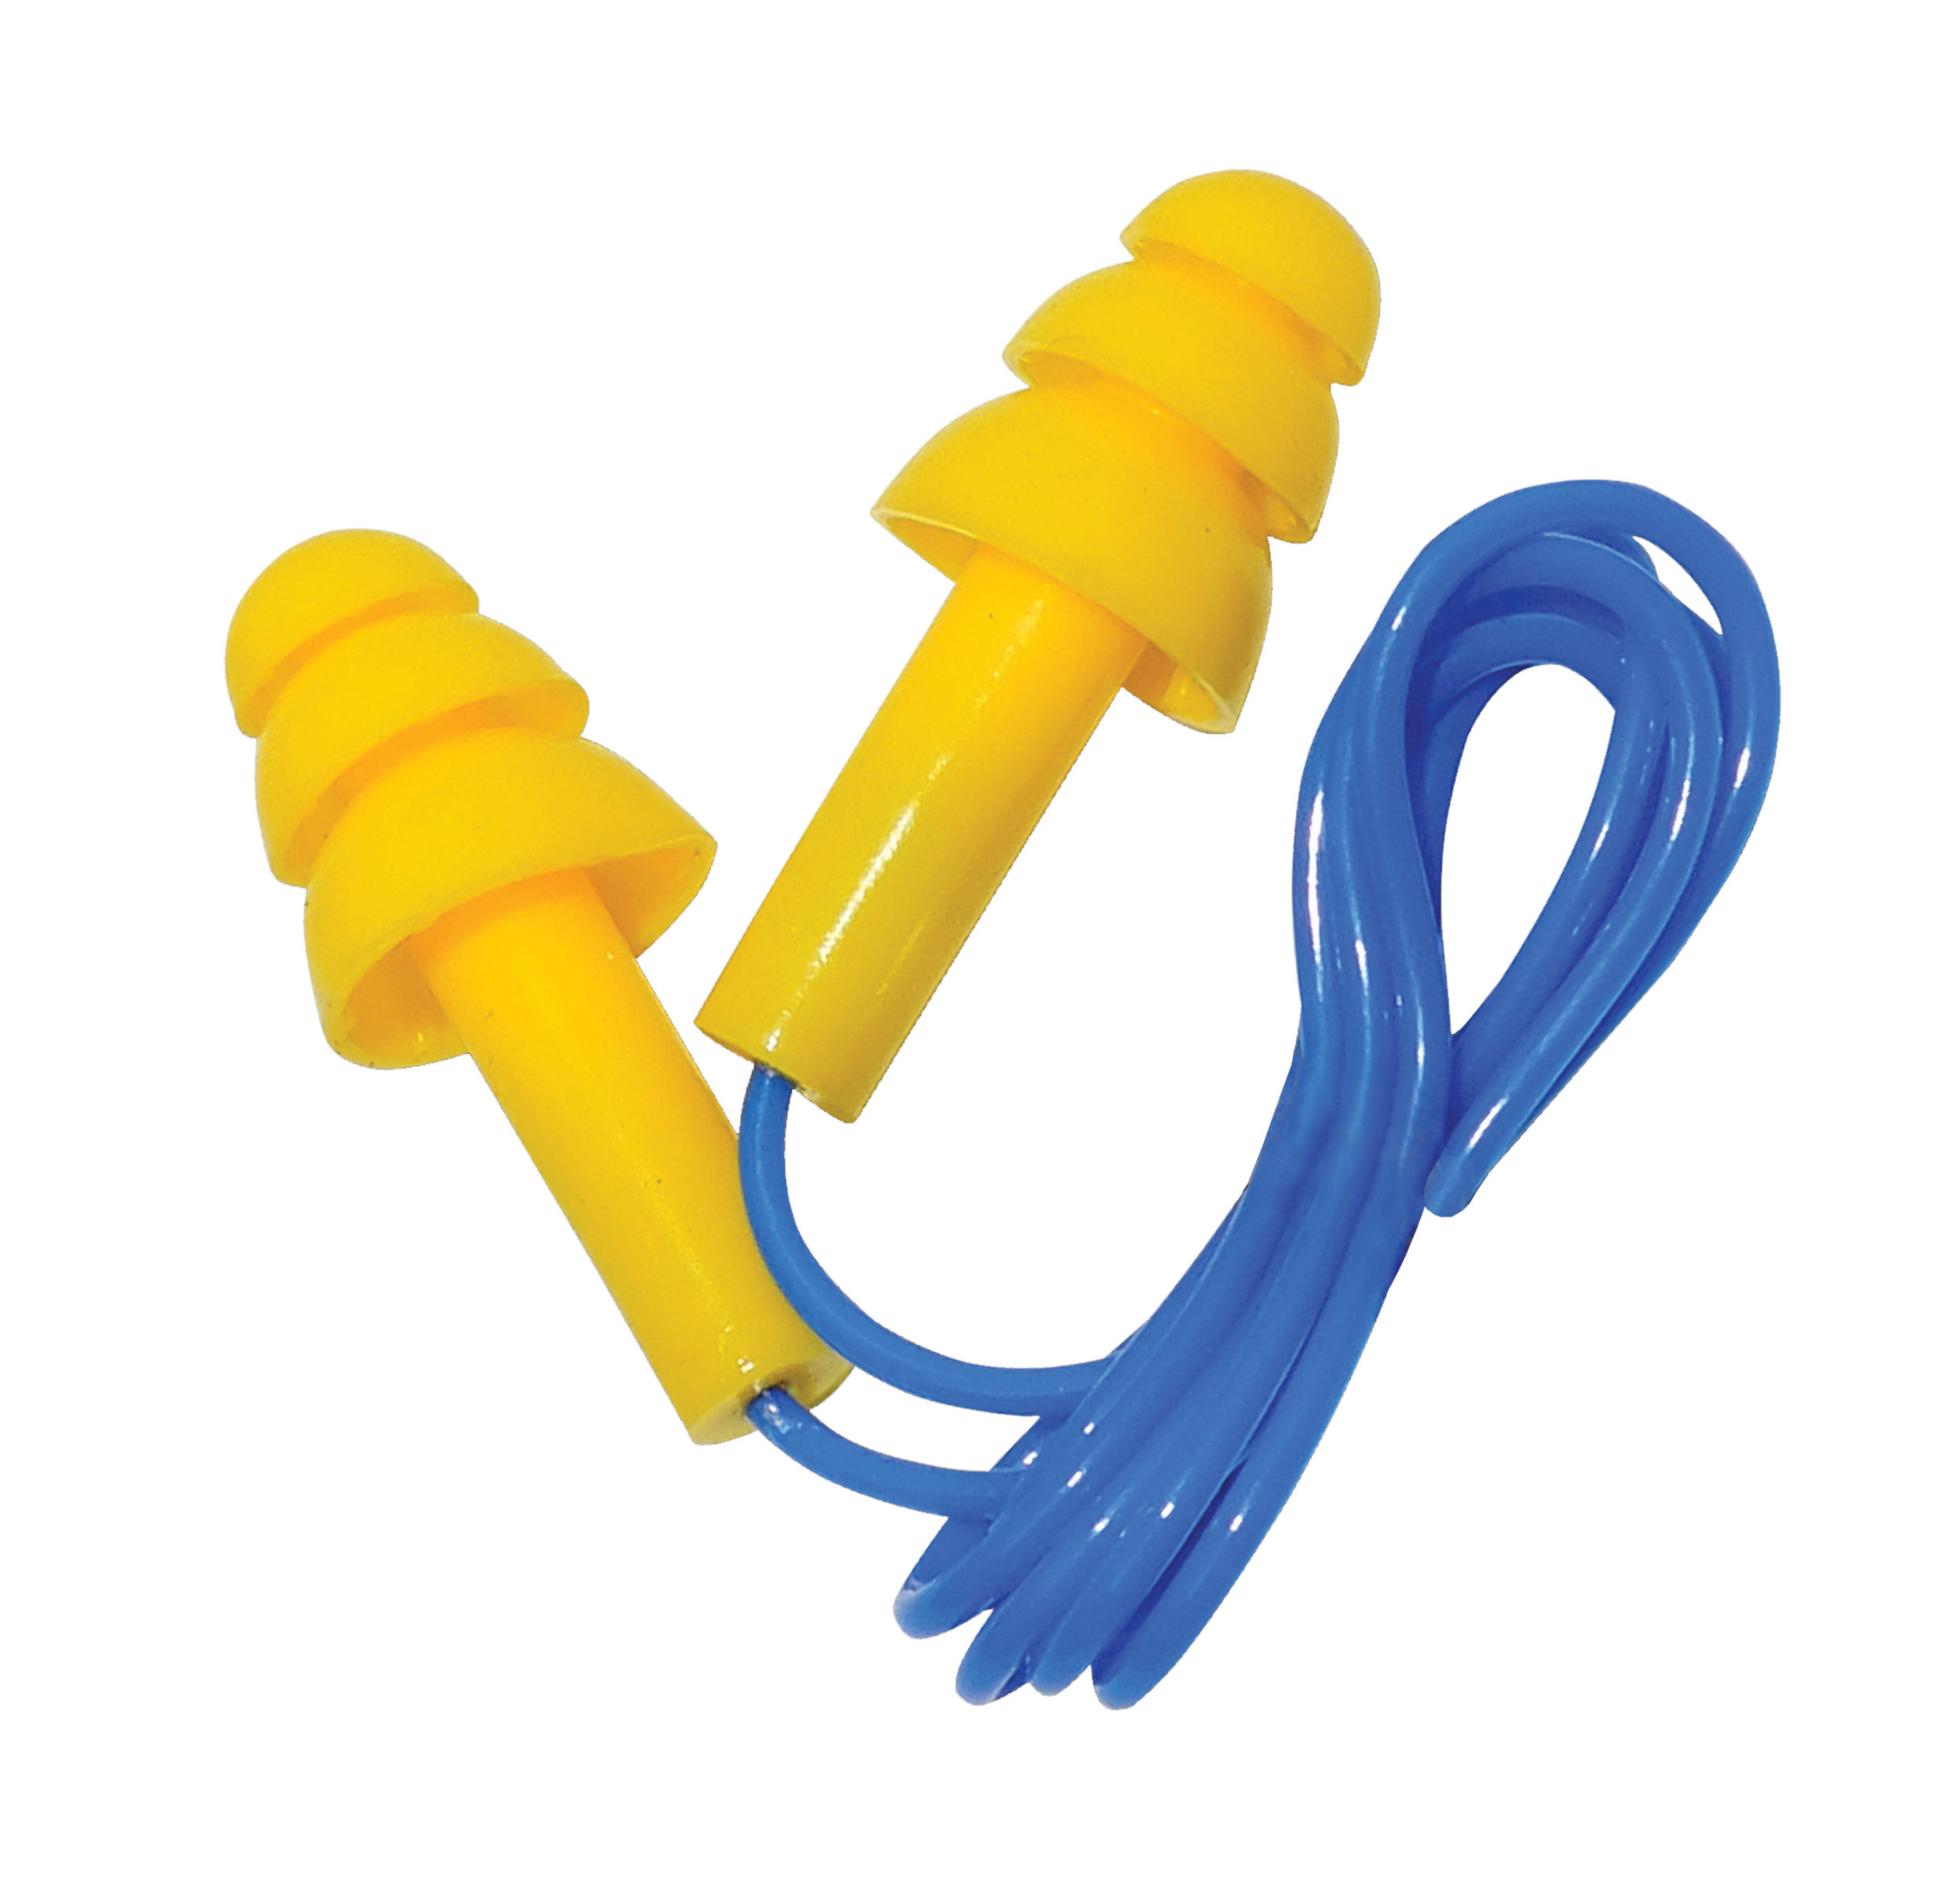 Silicone Plug with Cord